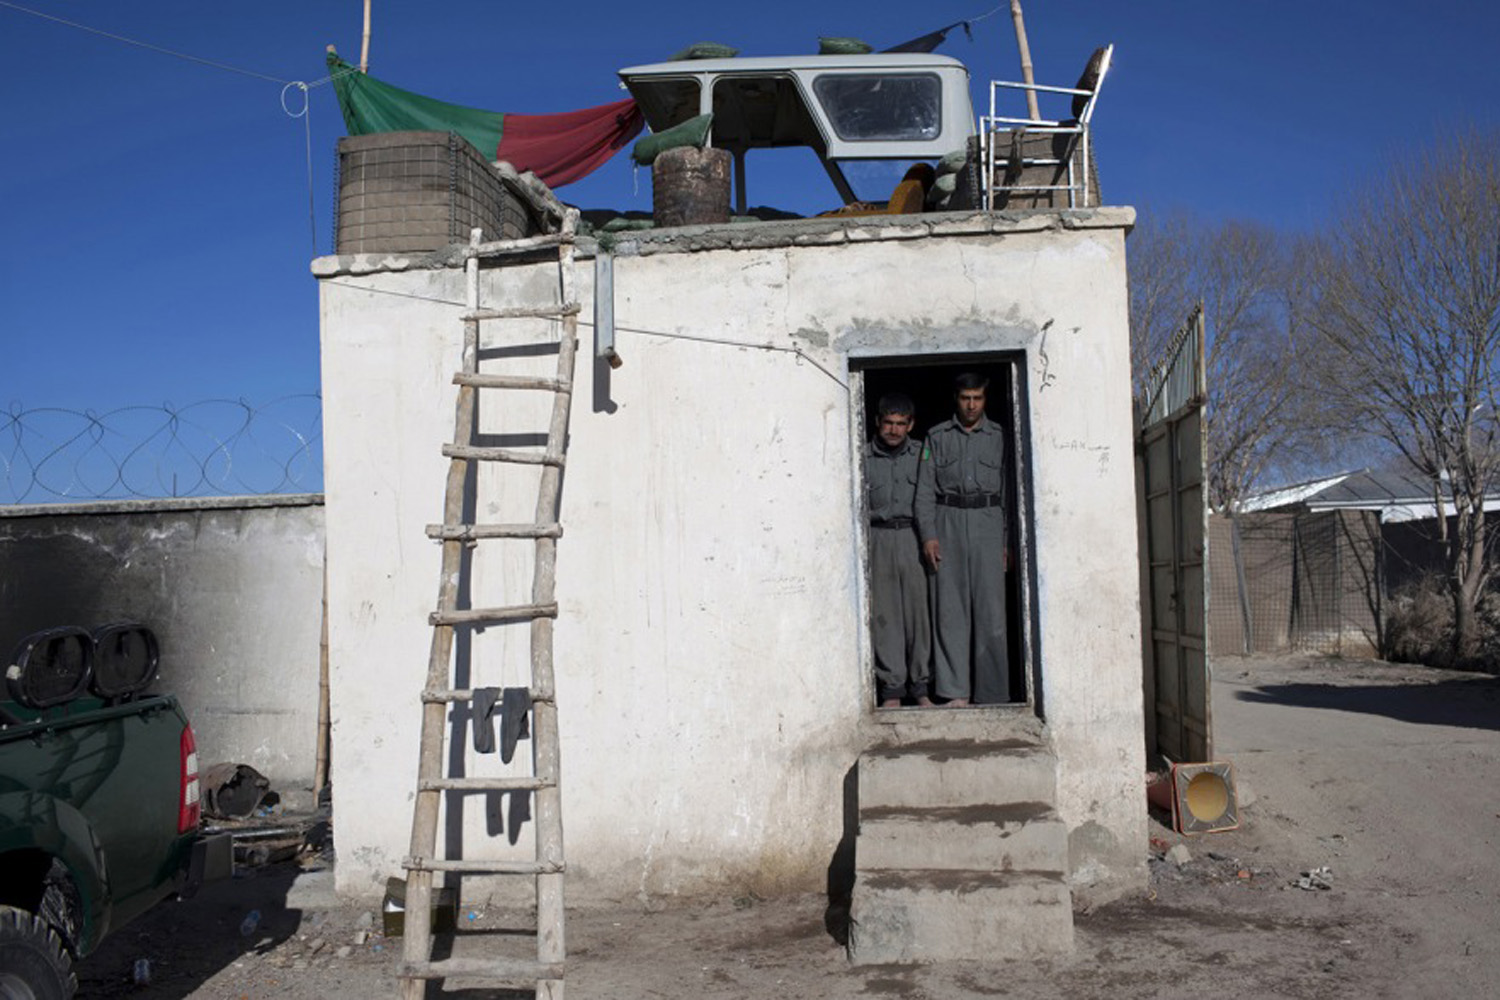 Two Afghan National Police stand at an entry guard post at the district center in Qarabagh, Afghanistan located in Ghazni province. March, 2009